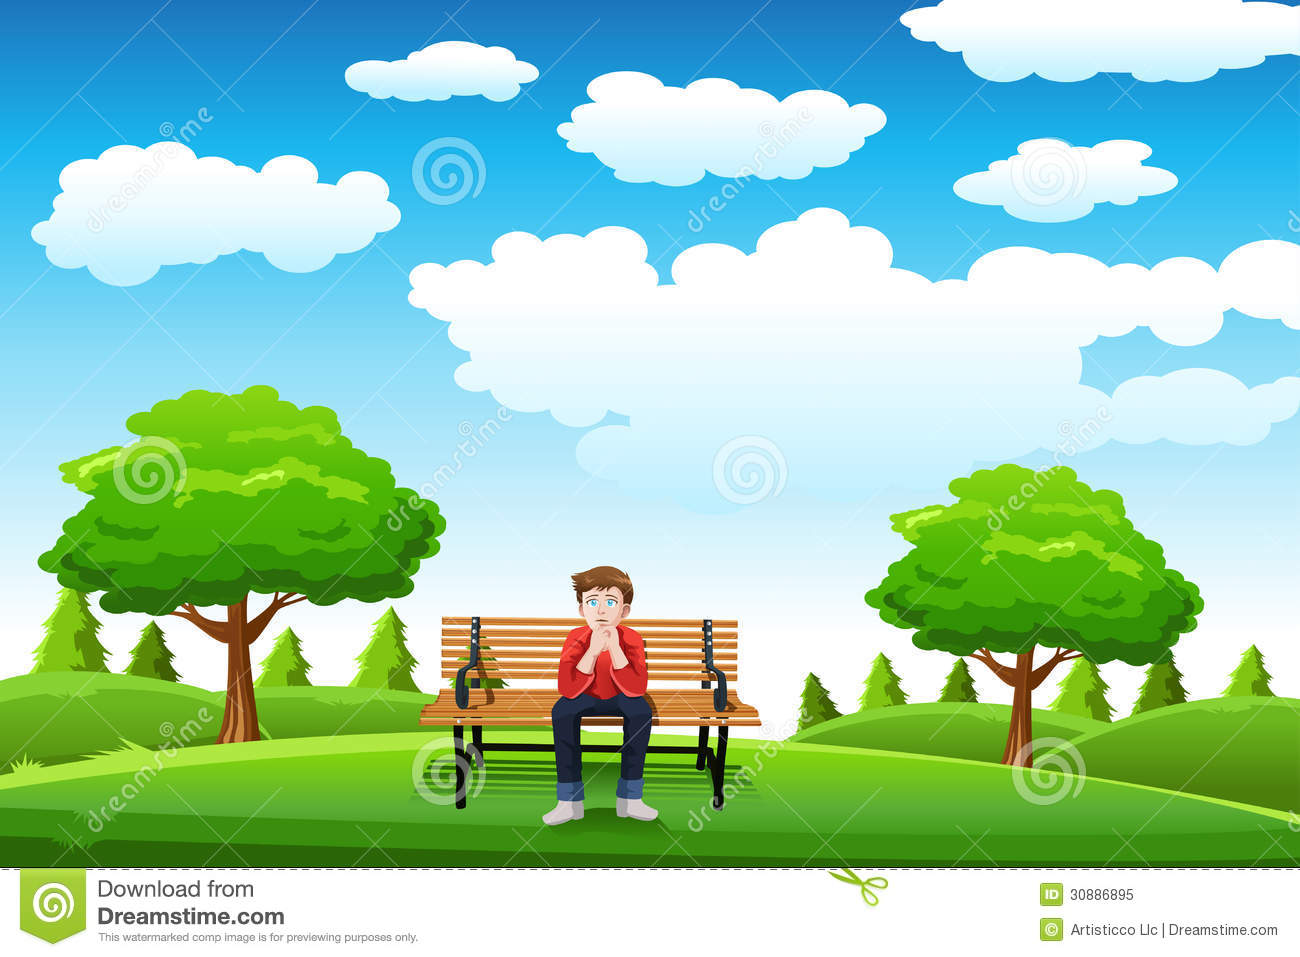 Man Sitting On The Bench Royalty Free Stock Photo - Image: 30886895